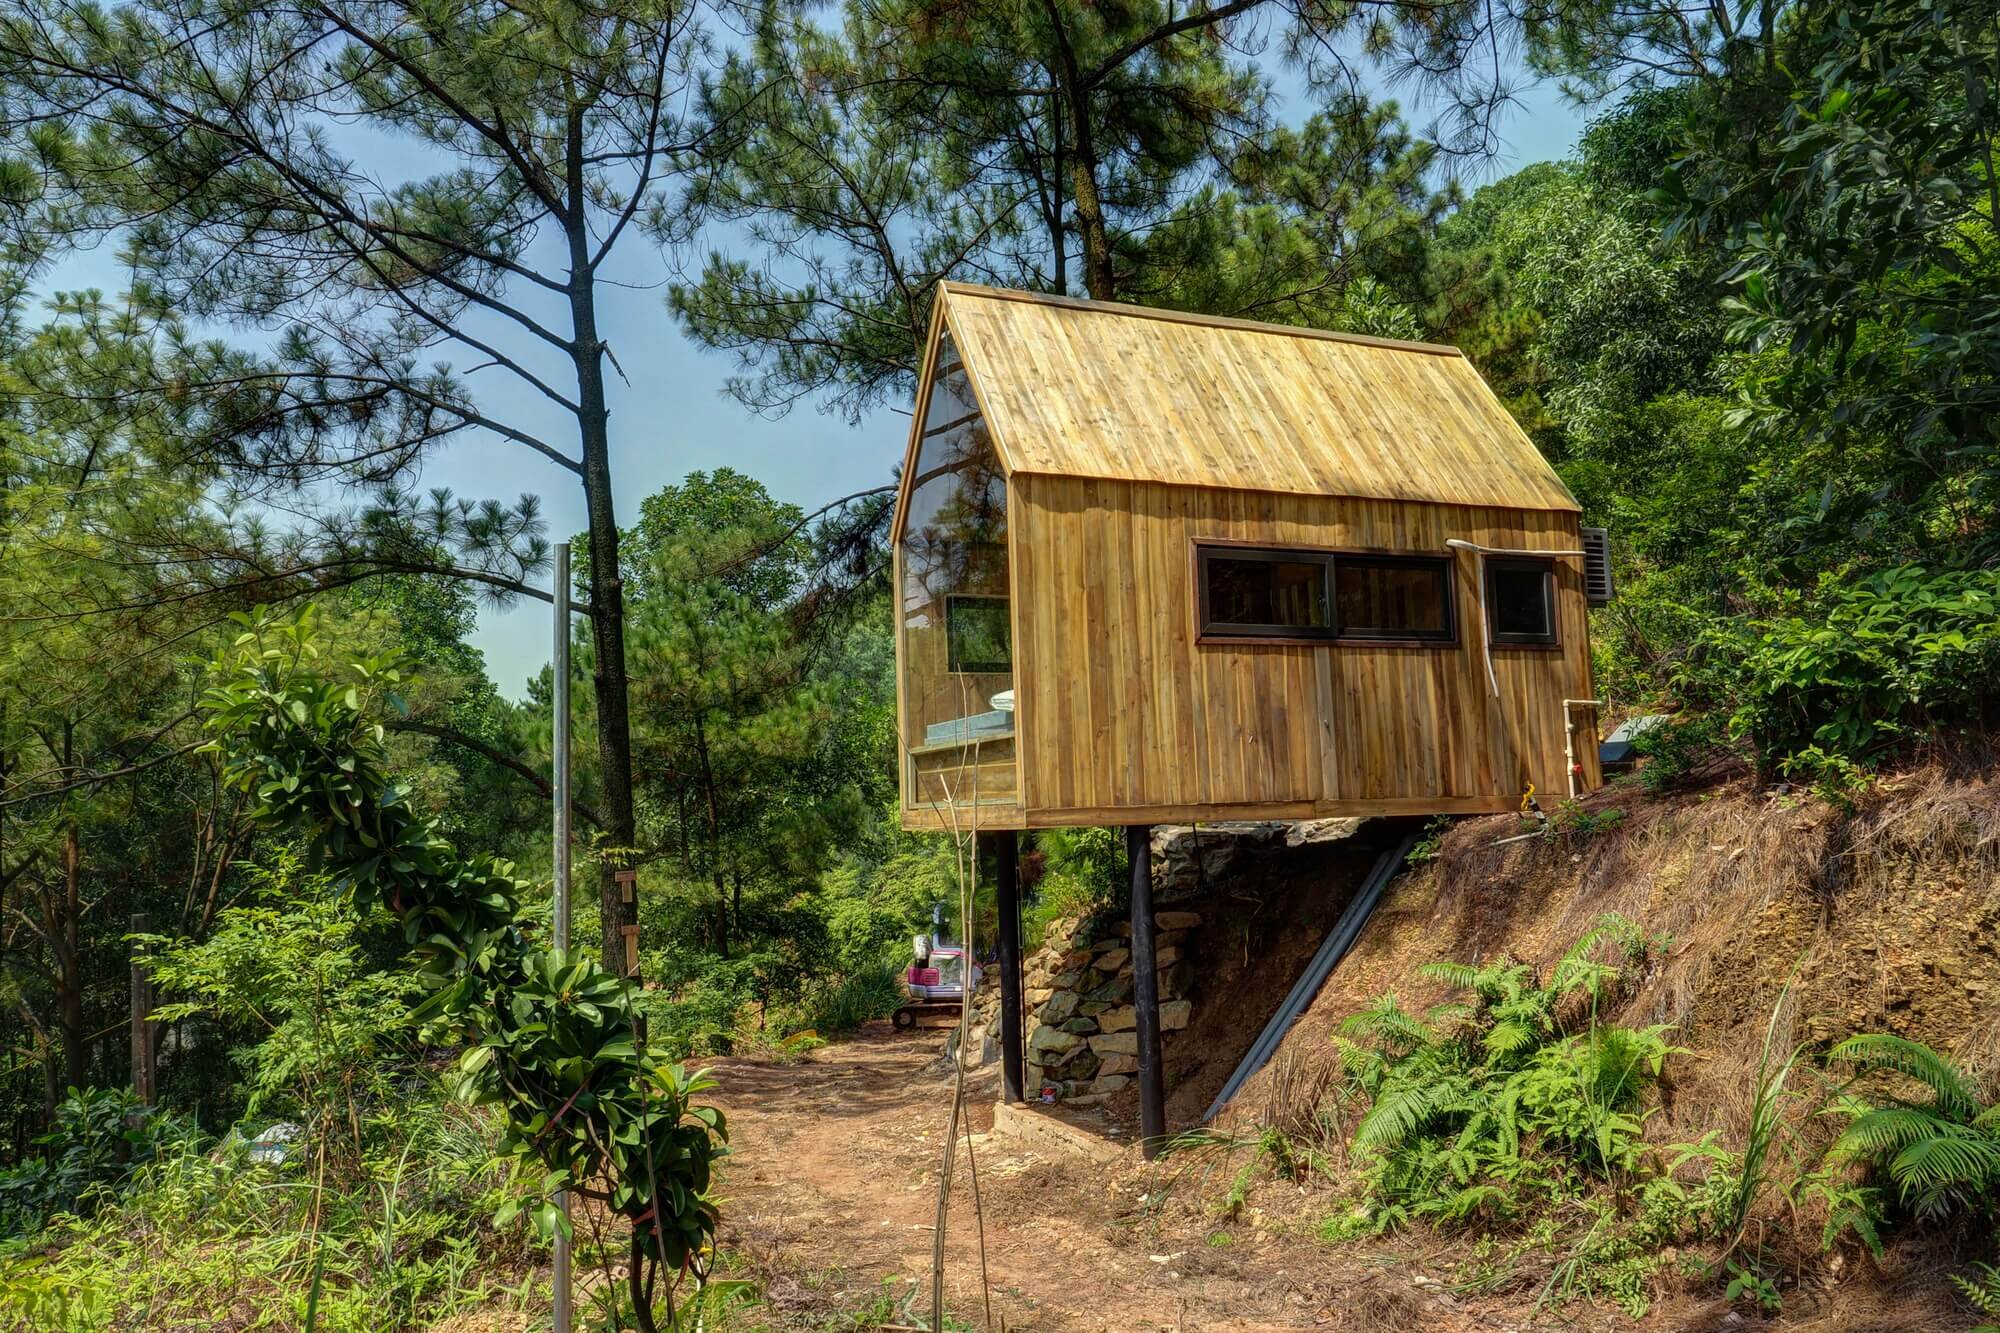 Forest-House-Chu-Văn-Đông-Vietnam-0-Humble-Homes N House Plans Tiny Homes on diy house plans, tiny house builders, tiny house bench, tiny homes house model, downsizing house plans, tiny house stairs, small house plans, mini home plans, tiny house on wheels kit, katrina cottage house plans, tiny house inside a park model,